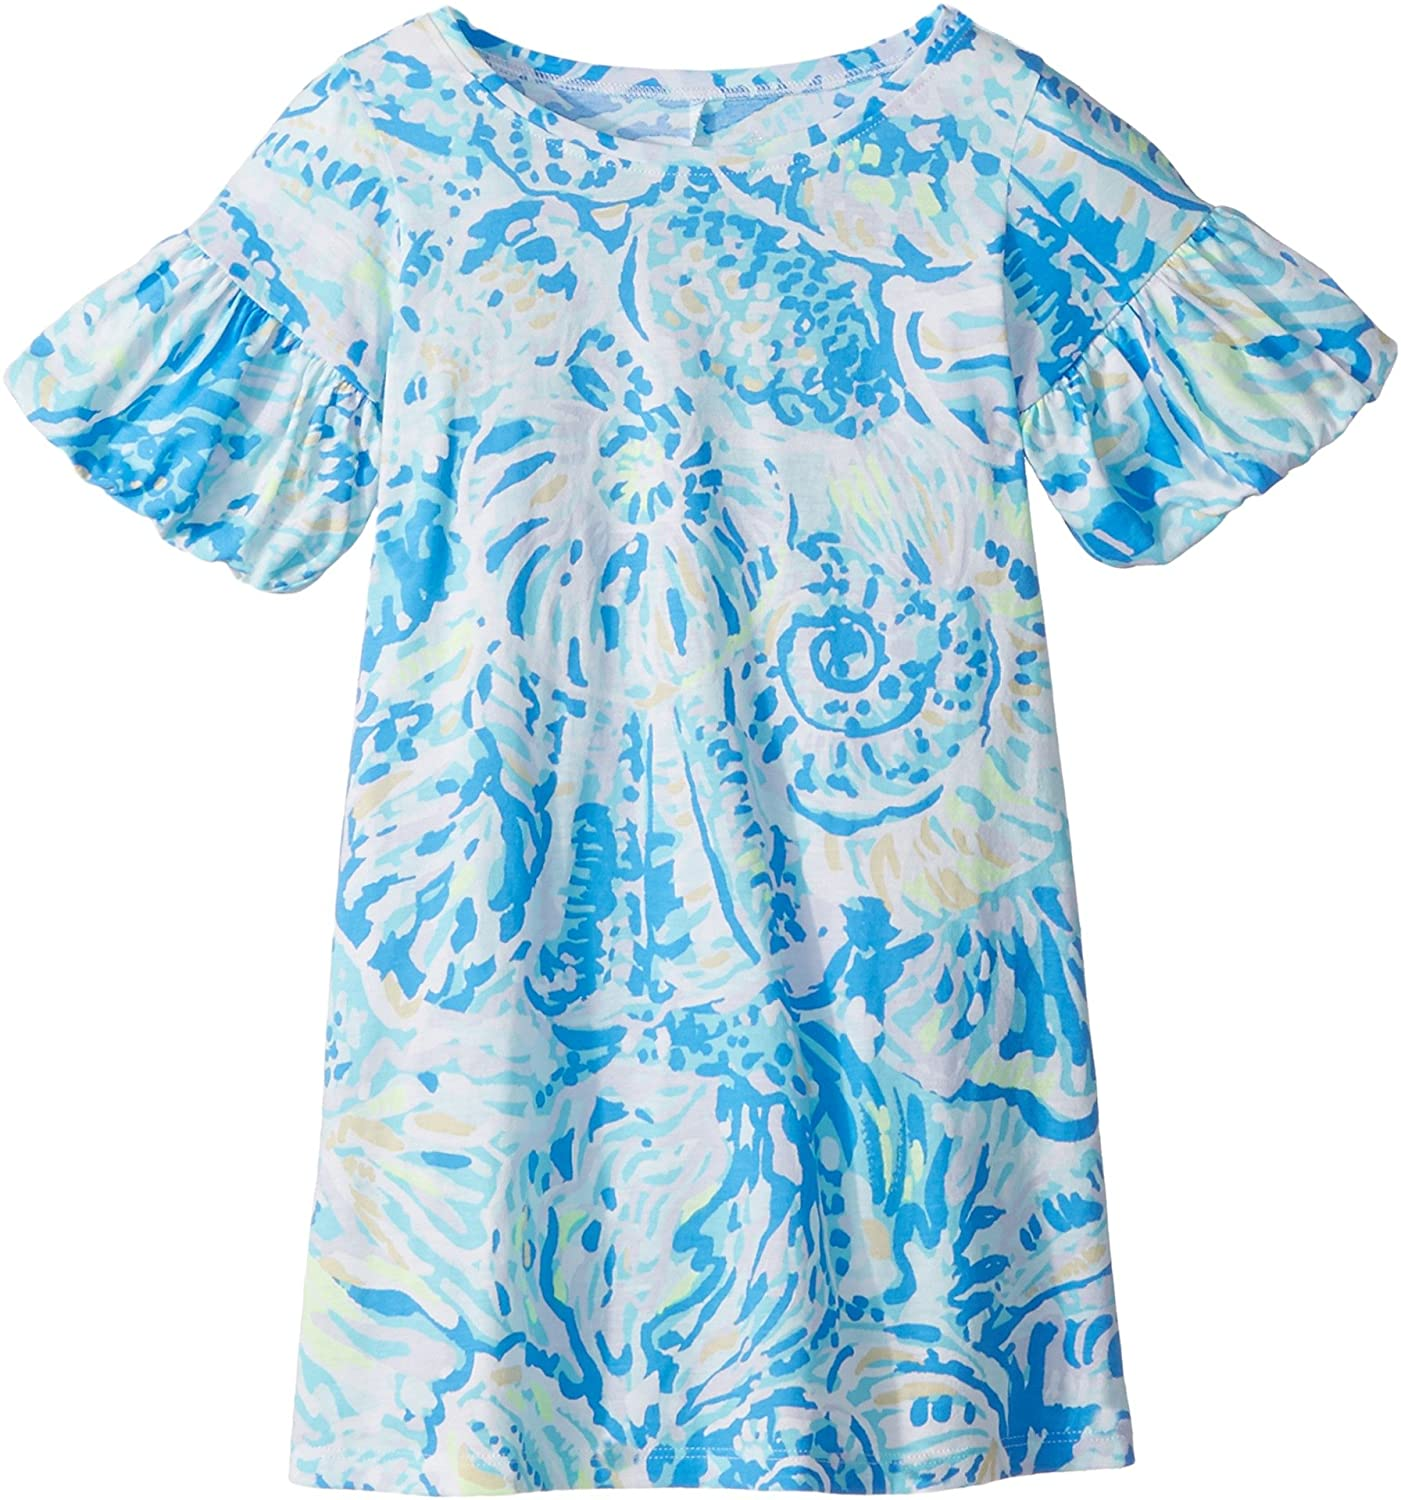 cc37cde2cb2af4 Amazon.com: Lilly Pulitzer Kids Baby Girl's Mini Lindell Dress  (Toddler/Little Kids/Big Kids) Bennet Blue Salty Seas Small: Clothing